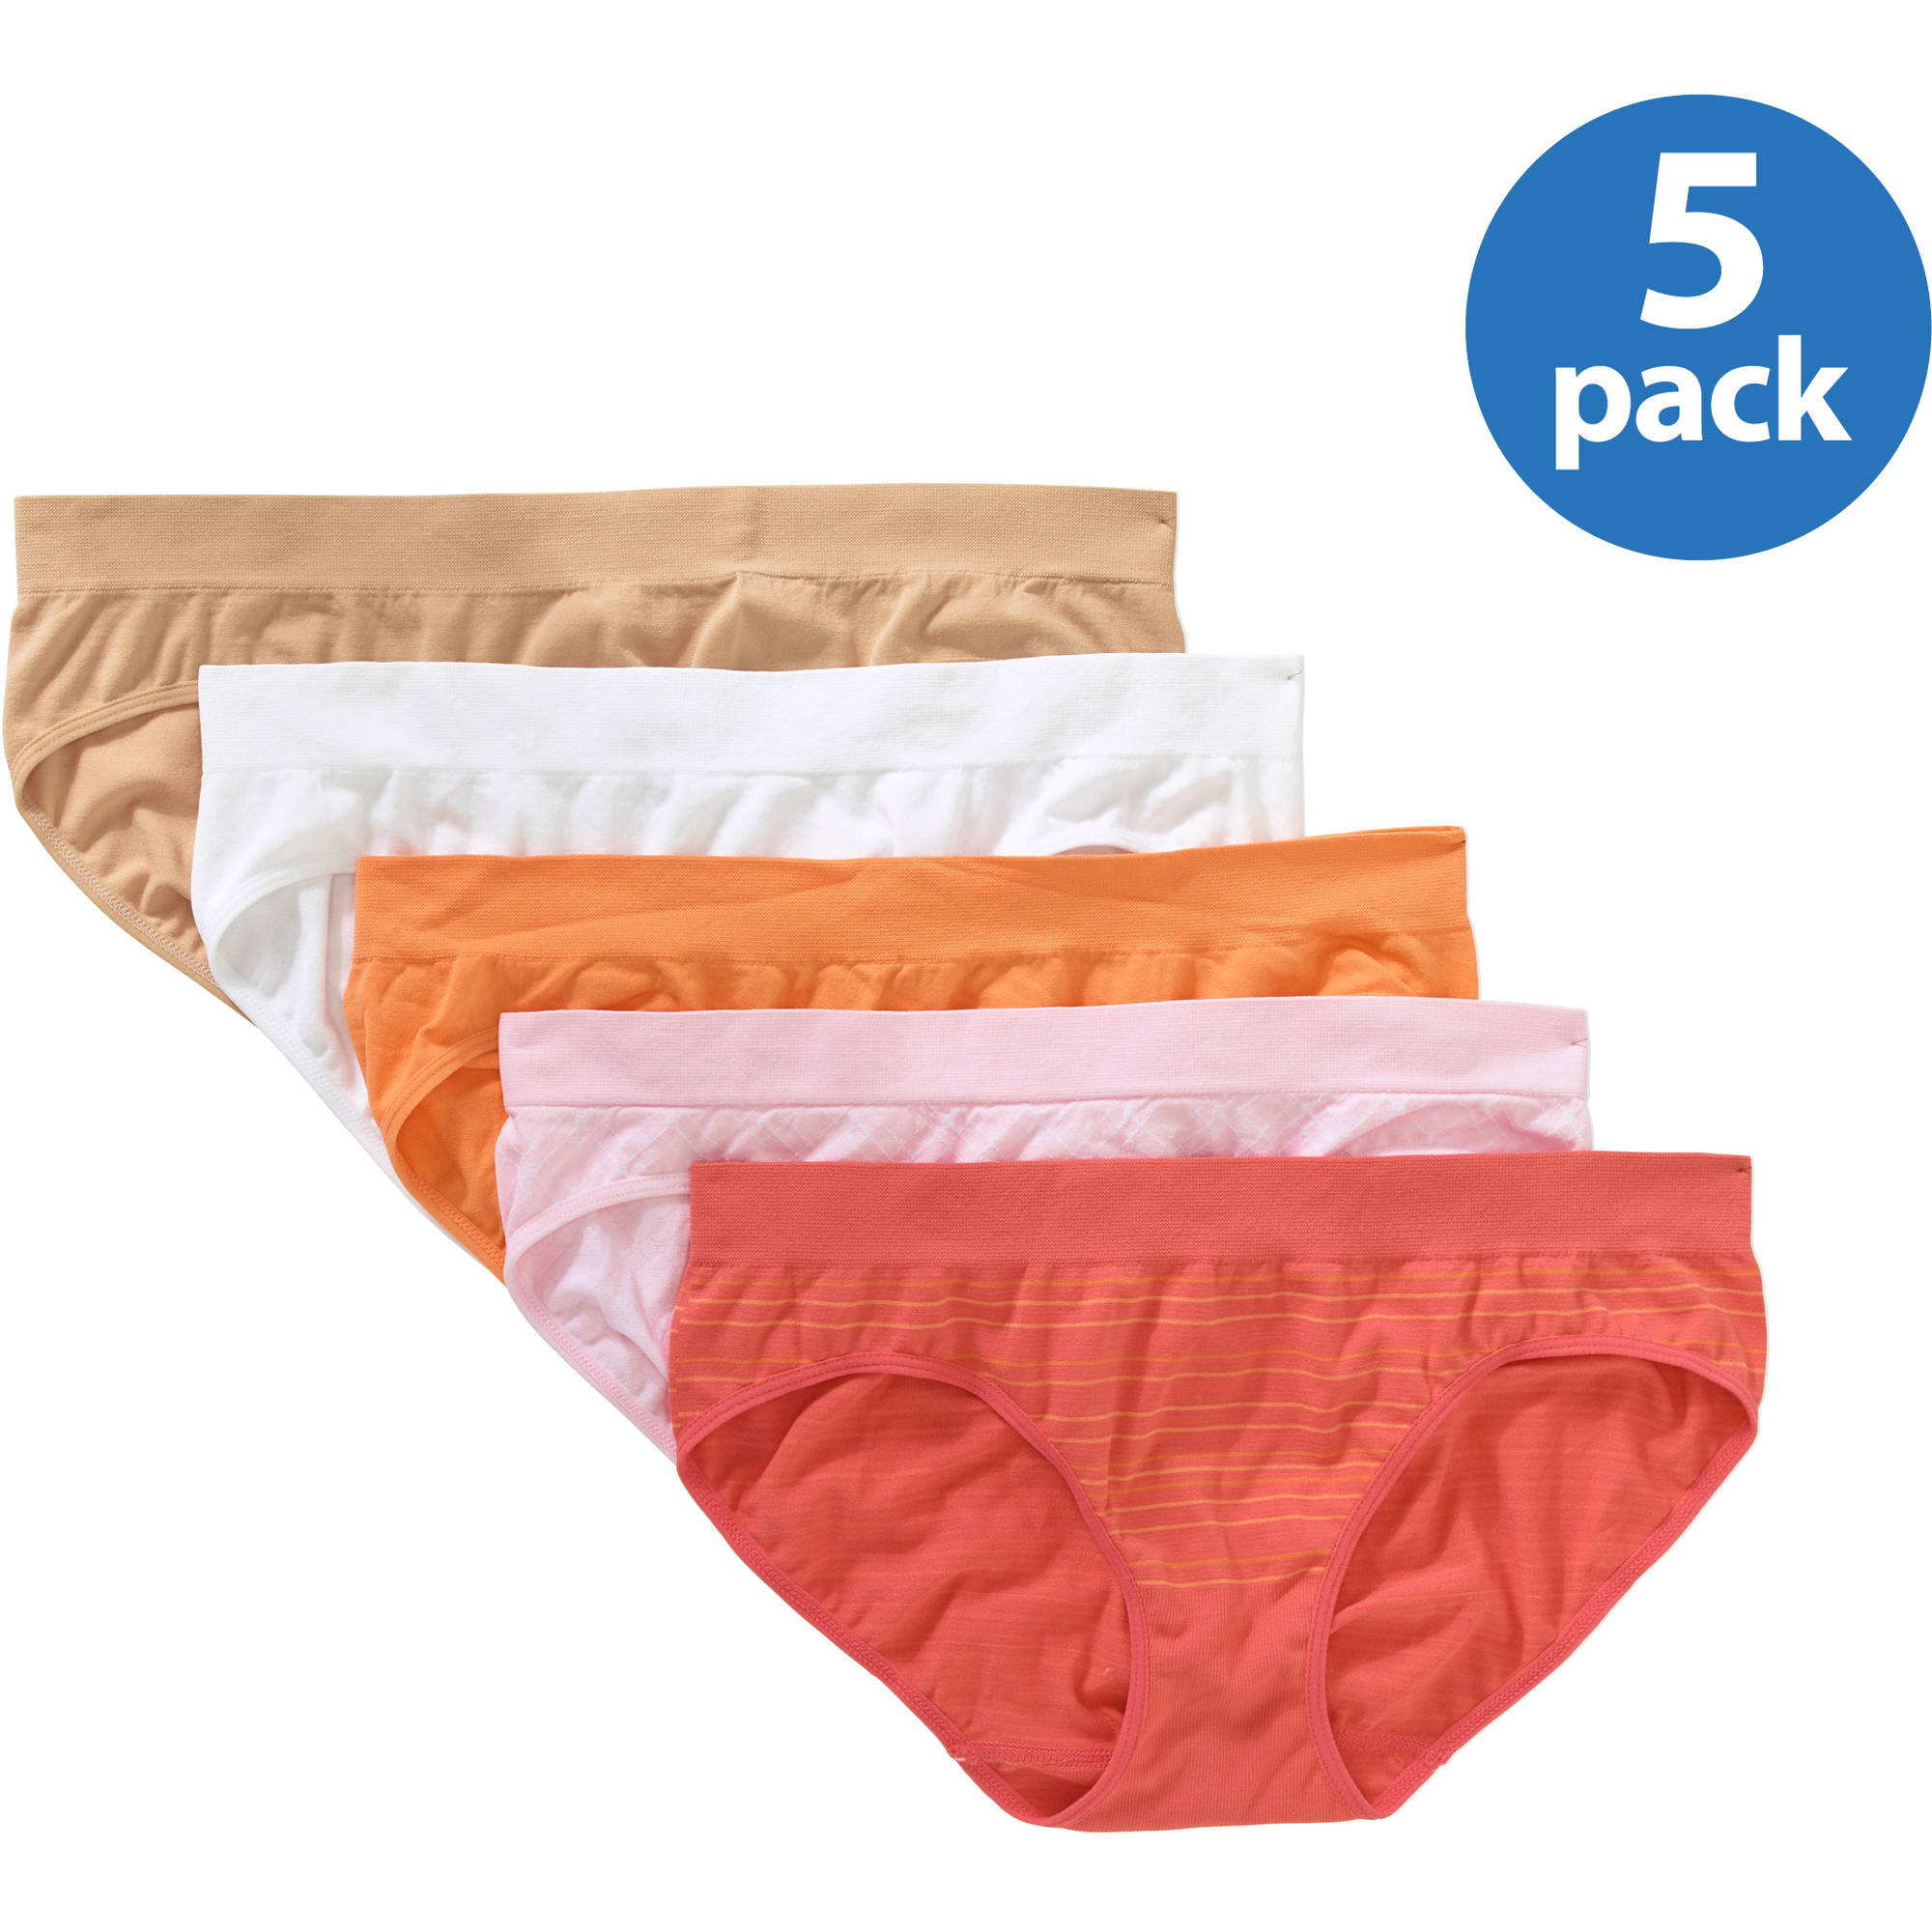 Secret Treasures Women's Seamless Bikini Panty - 5 Pack